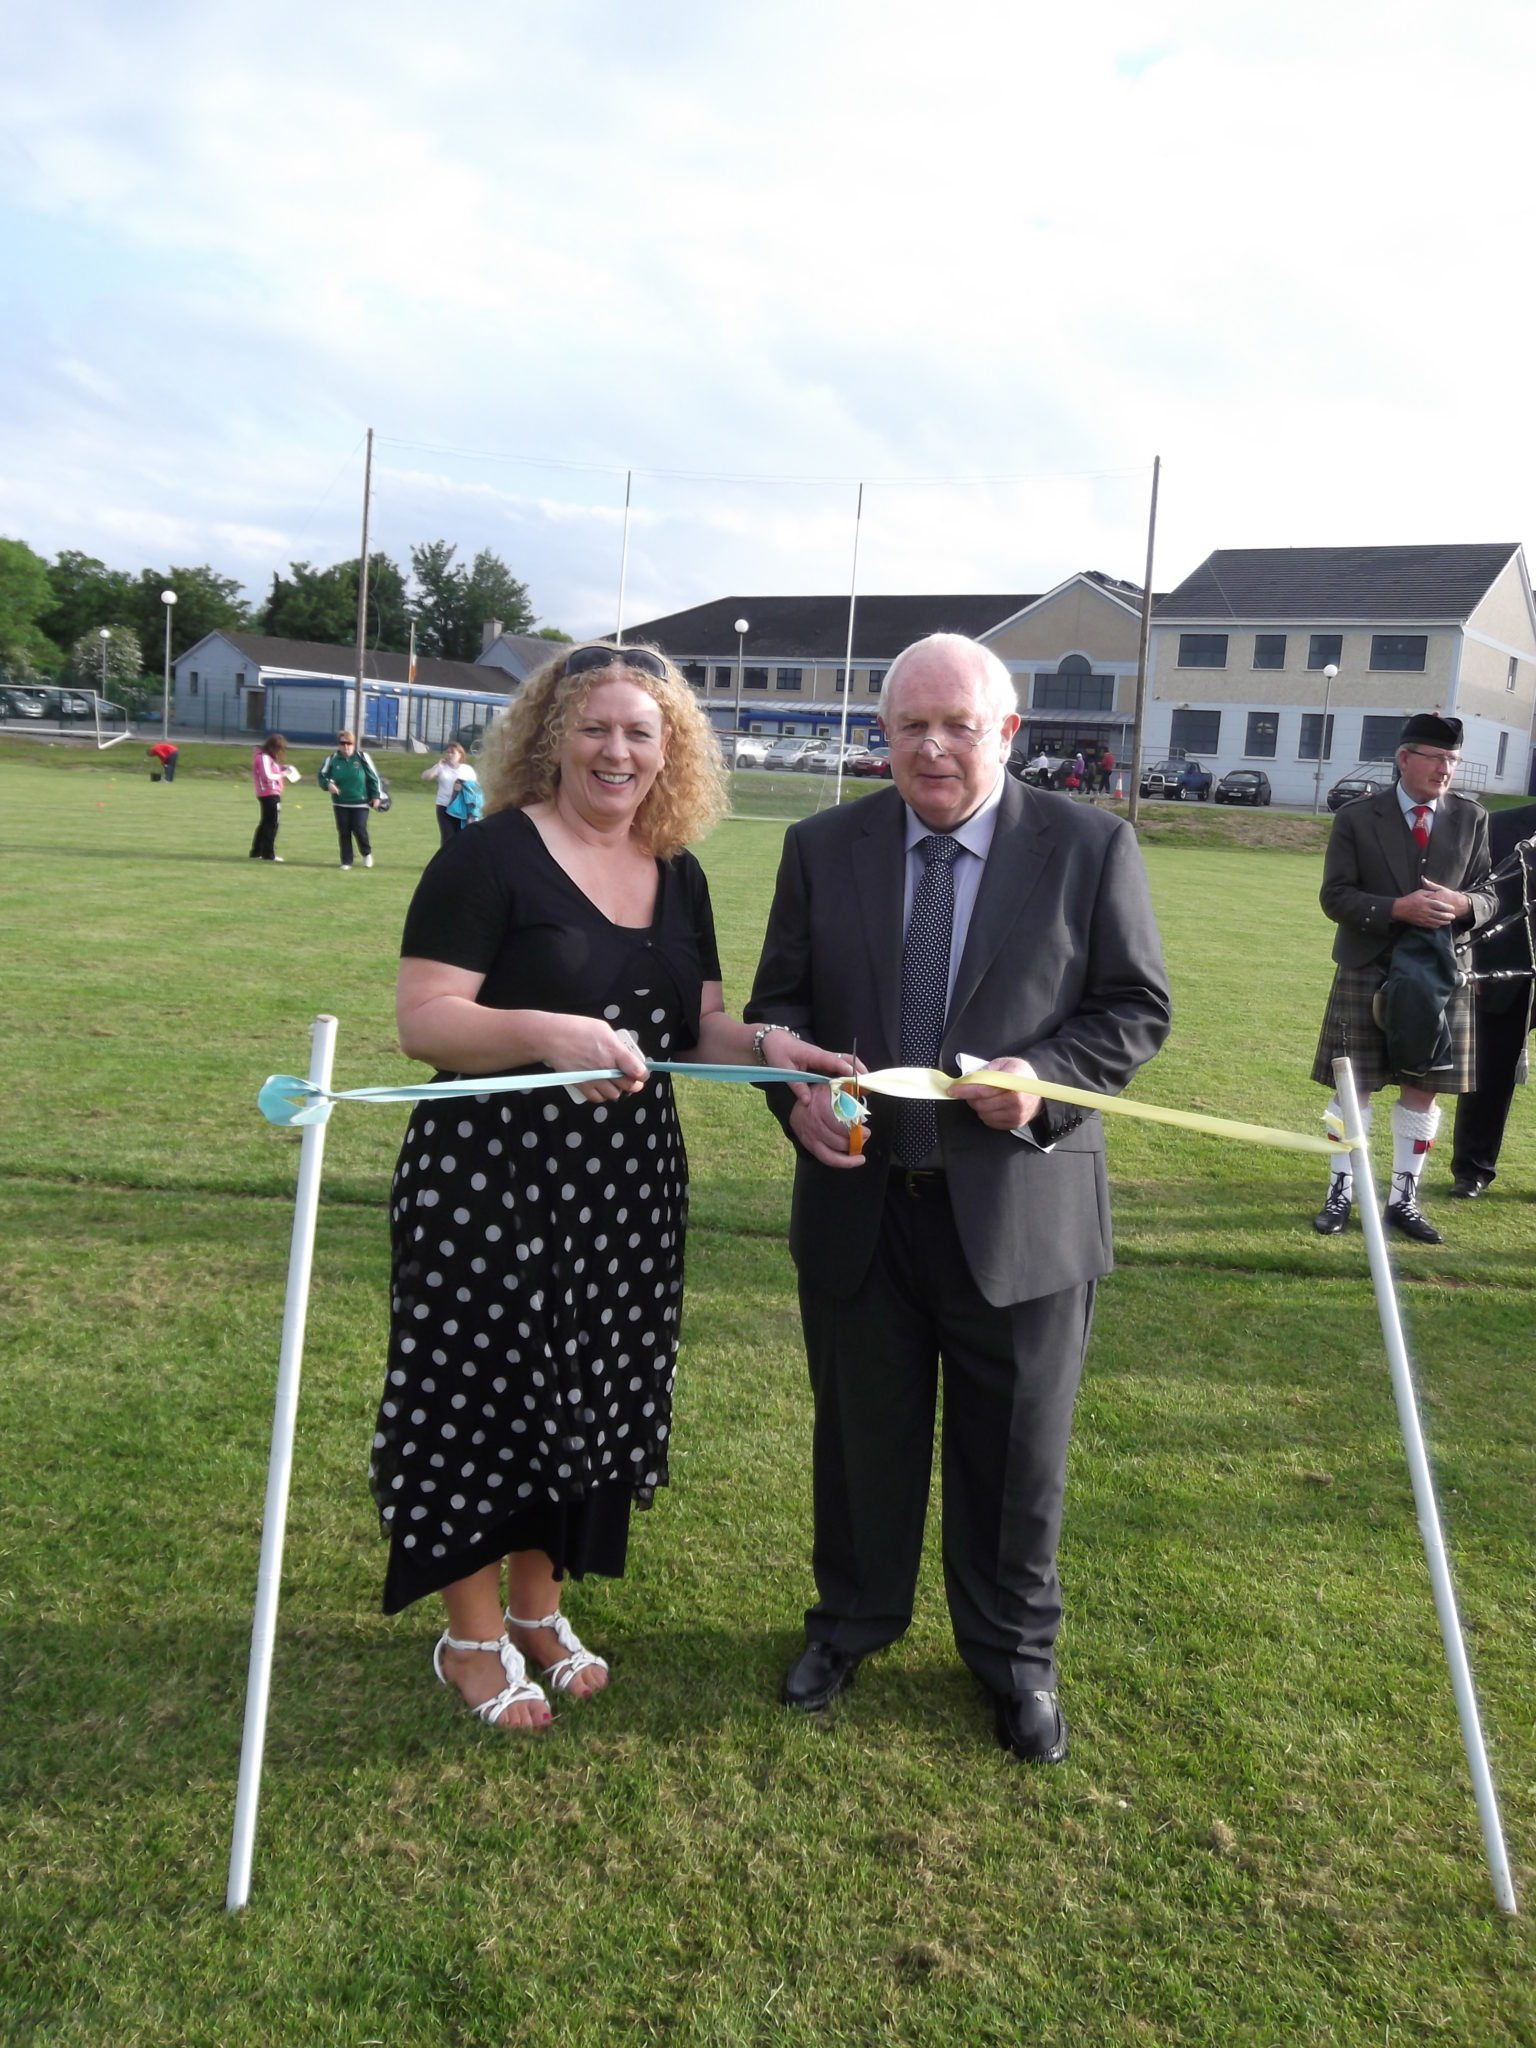 Official Opening of the School Pitch June 2014